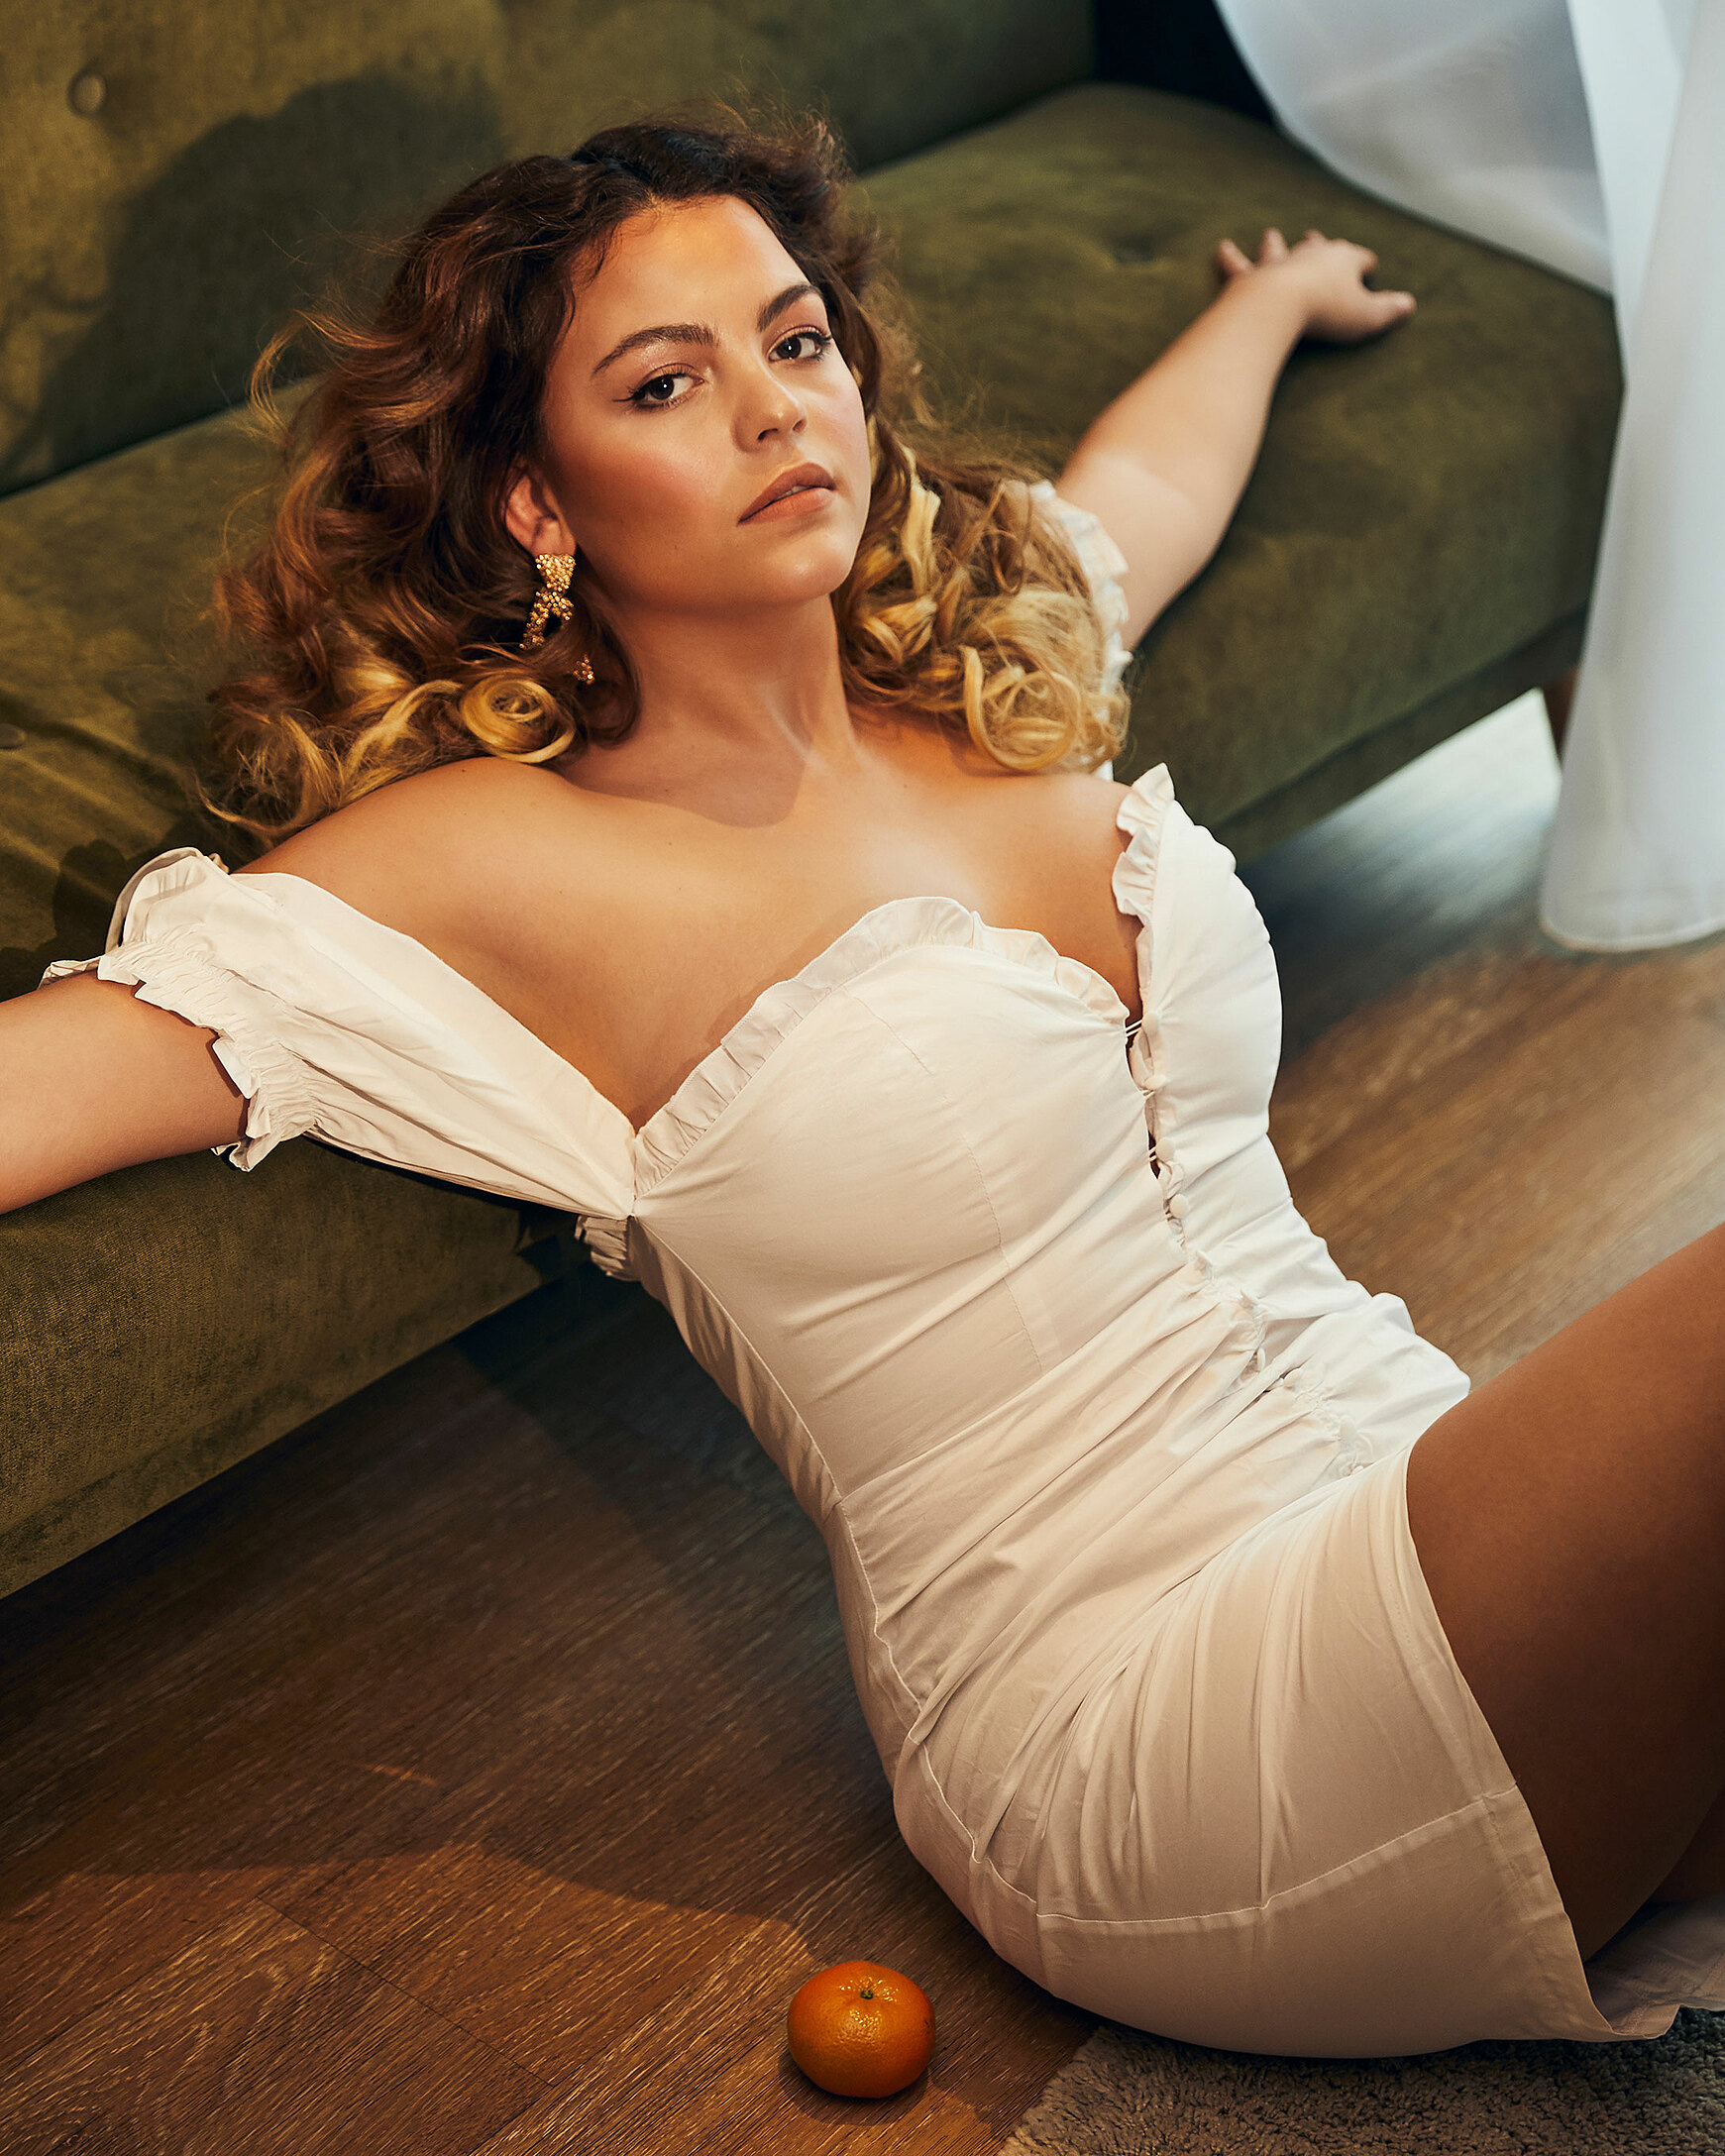 A brown hair model with curly hair in a white dress. She sits on the ground and lean against the sofa with a tangerine next to her